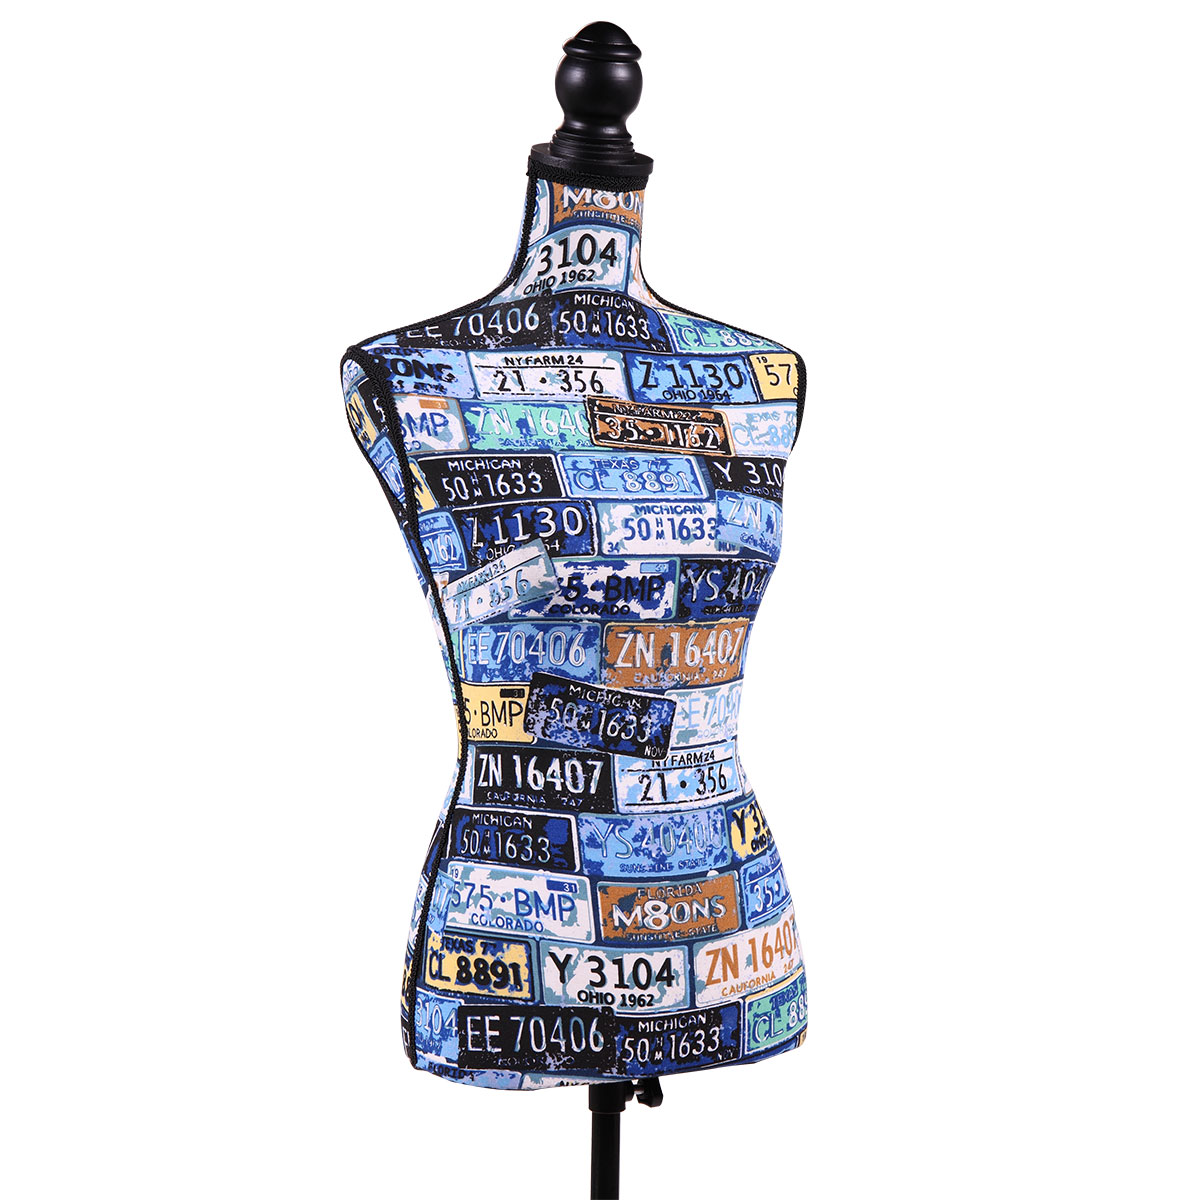 Jaxpety Blue Female Mannequin Torso Dress Clothing Form Display Sewing Mannequin W/ Tripod Stand New